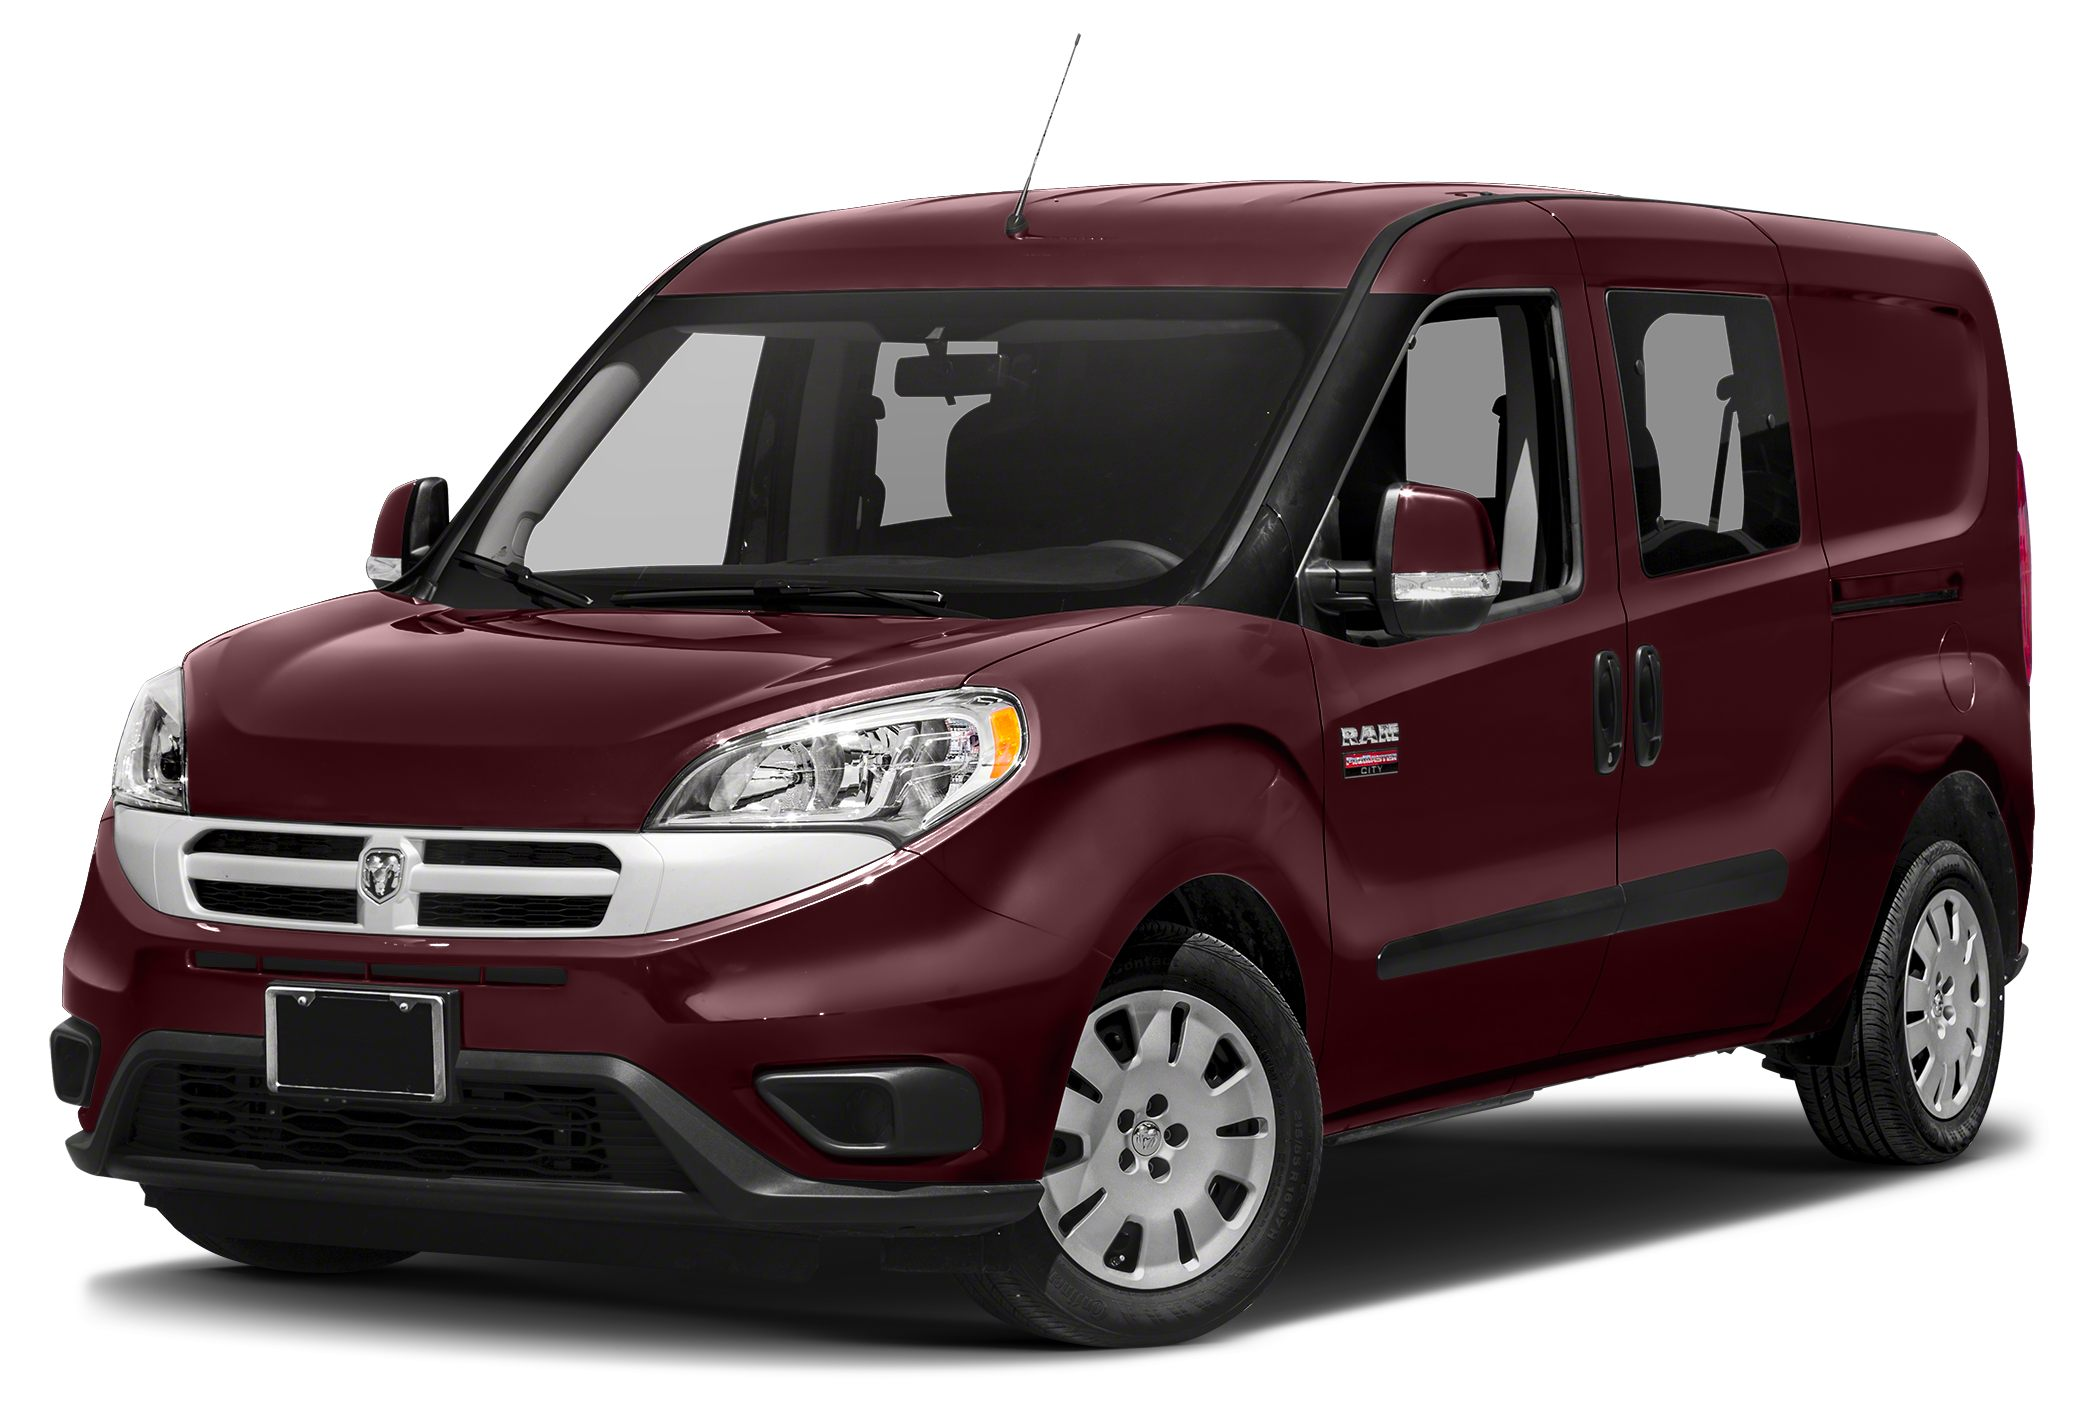 2018 RAM ProMaster City SLT SPECIAL ONLINE PRICE INCLUDES 1000 IN REBATES THAT ALL CUSTOMERS QUA